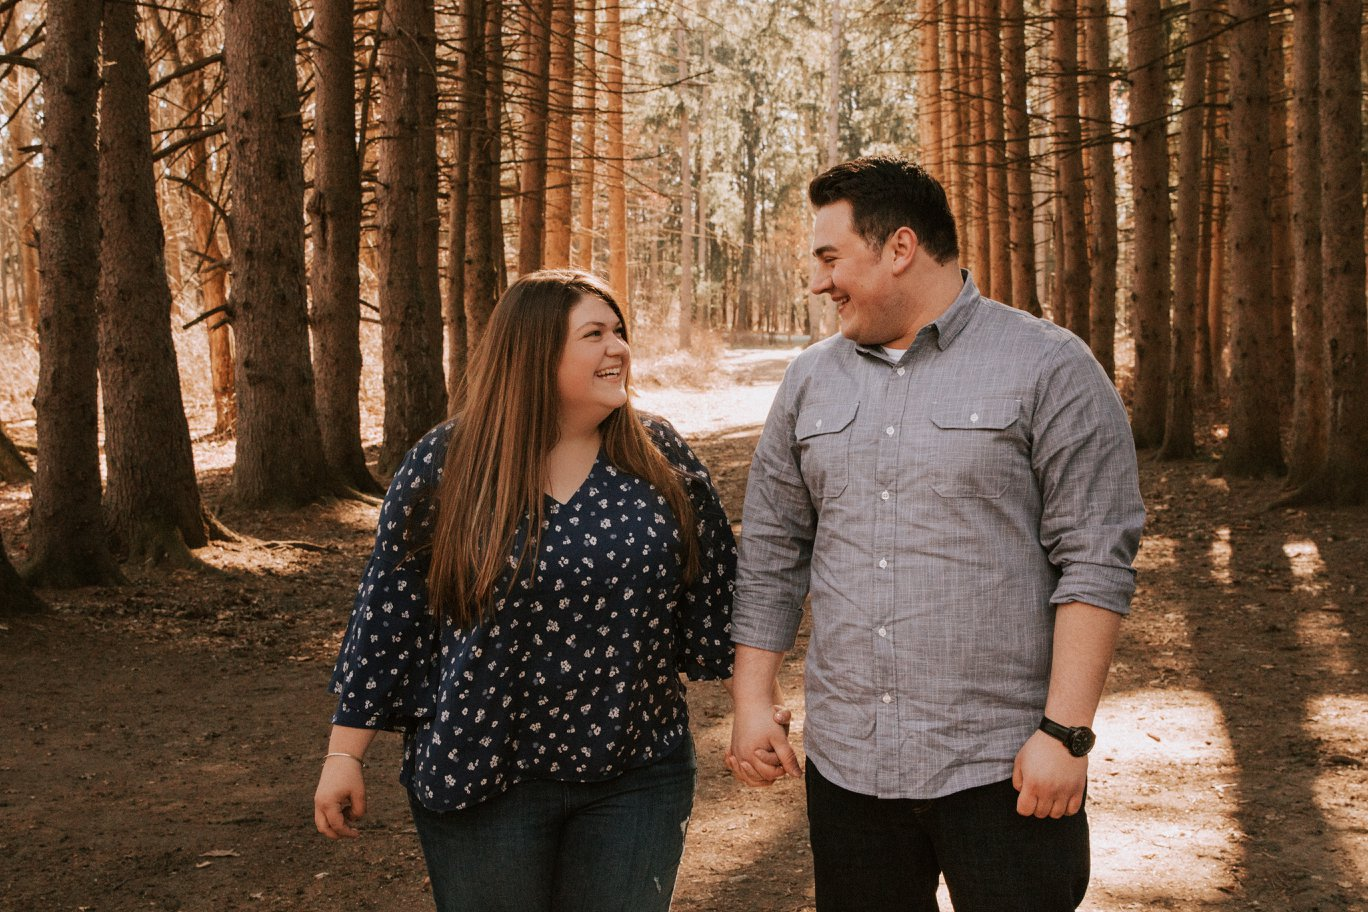 - First time taking professional pictures and I'm so glad we chose Mallory to shoot our engagement photos! We had so much fun and many laughs! I can't wait to see them! I would highly recommend her!